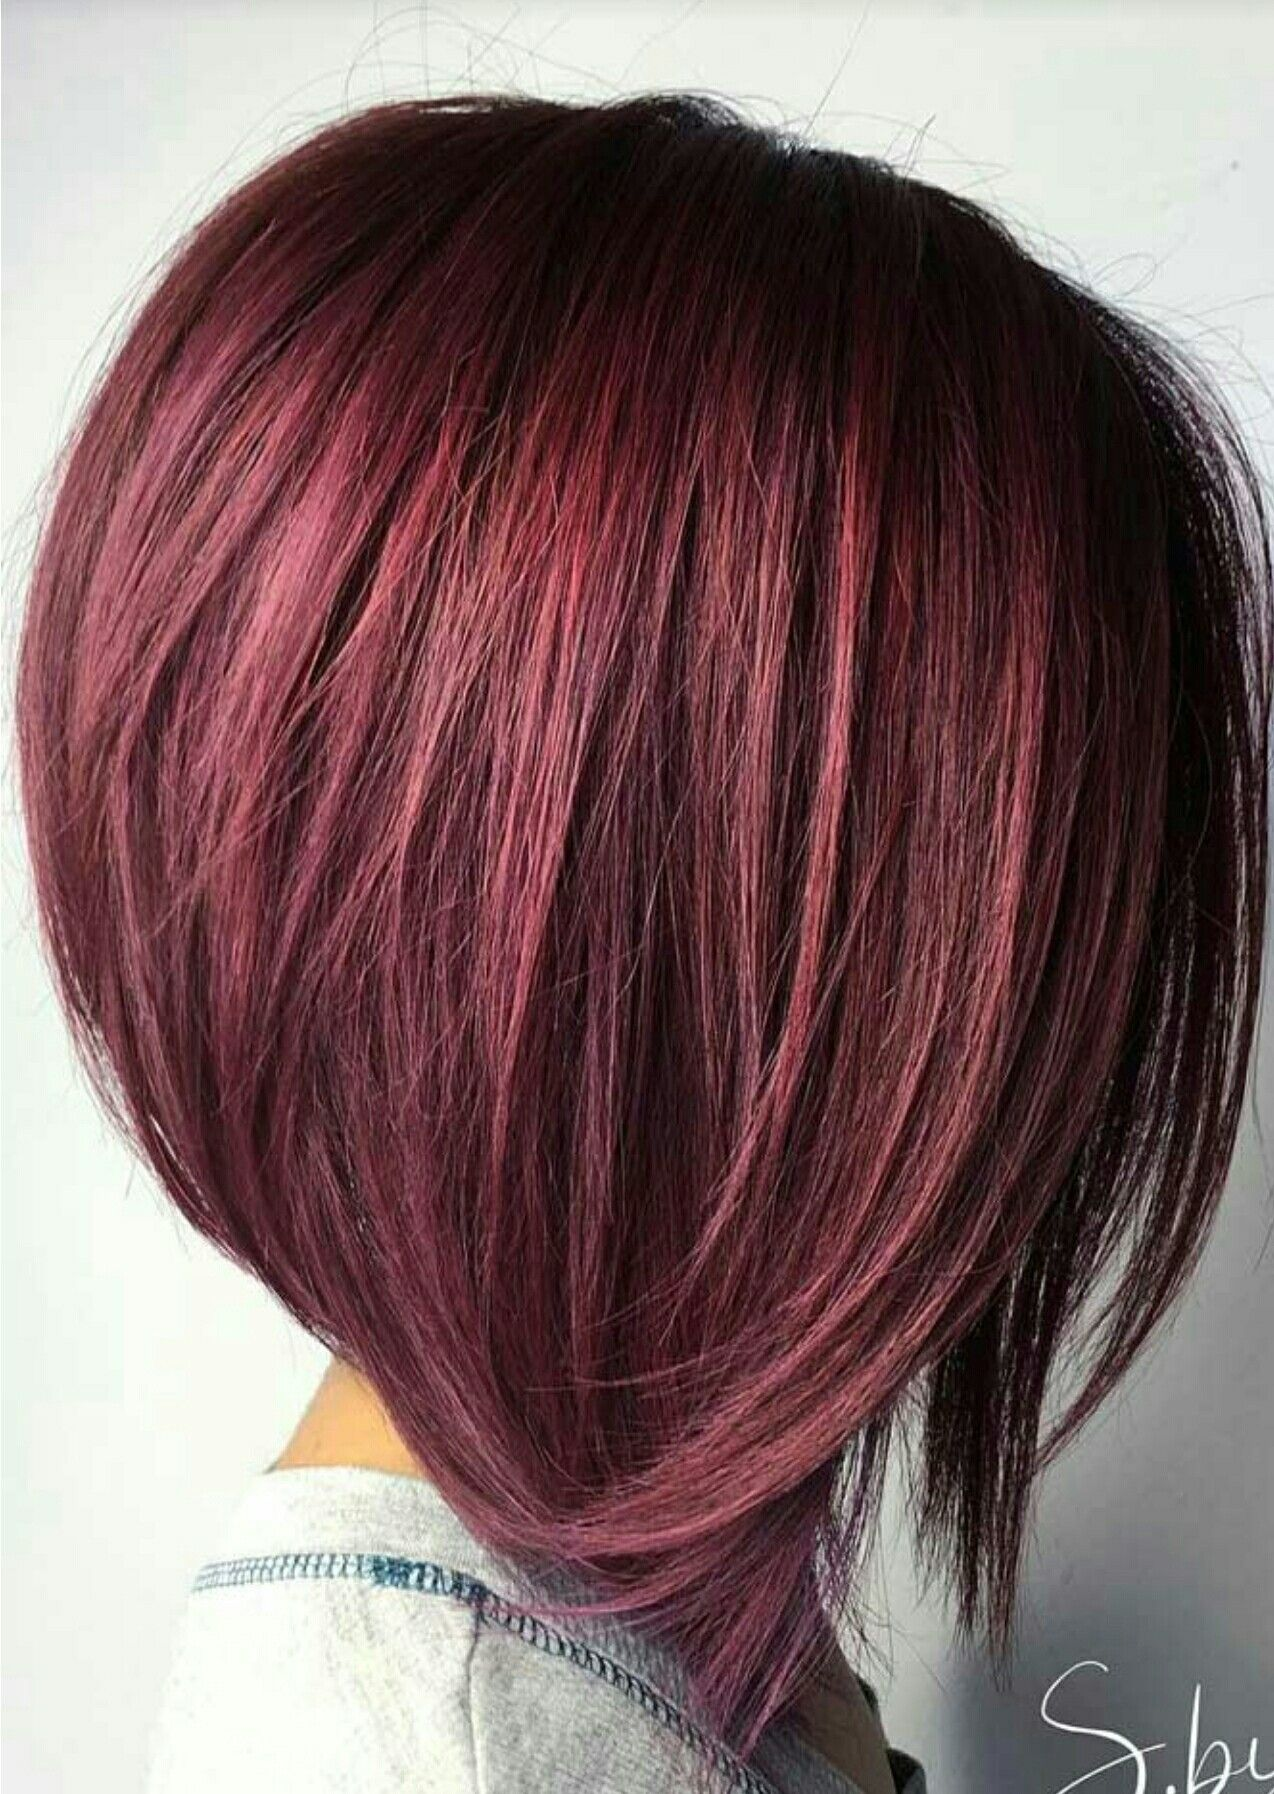 Pin by pickle askegaard on give me a head with hair pinterest